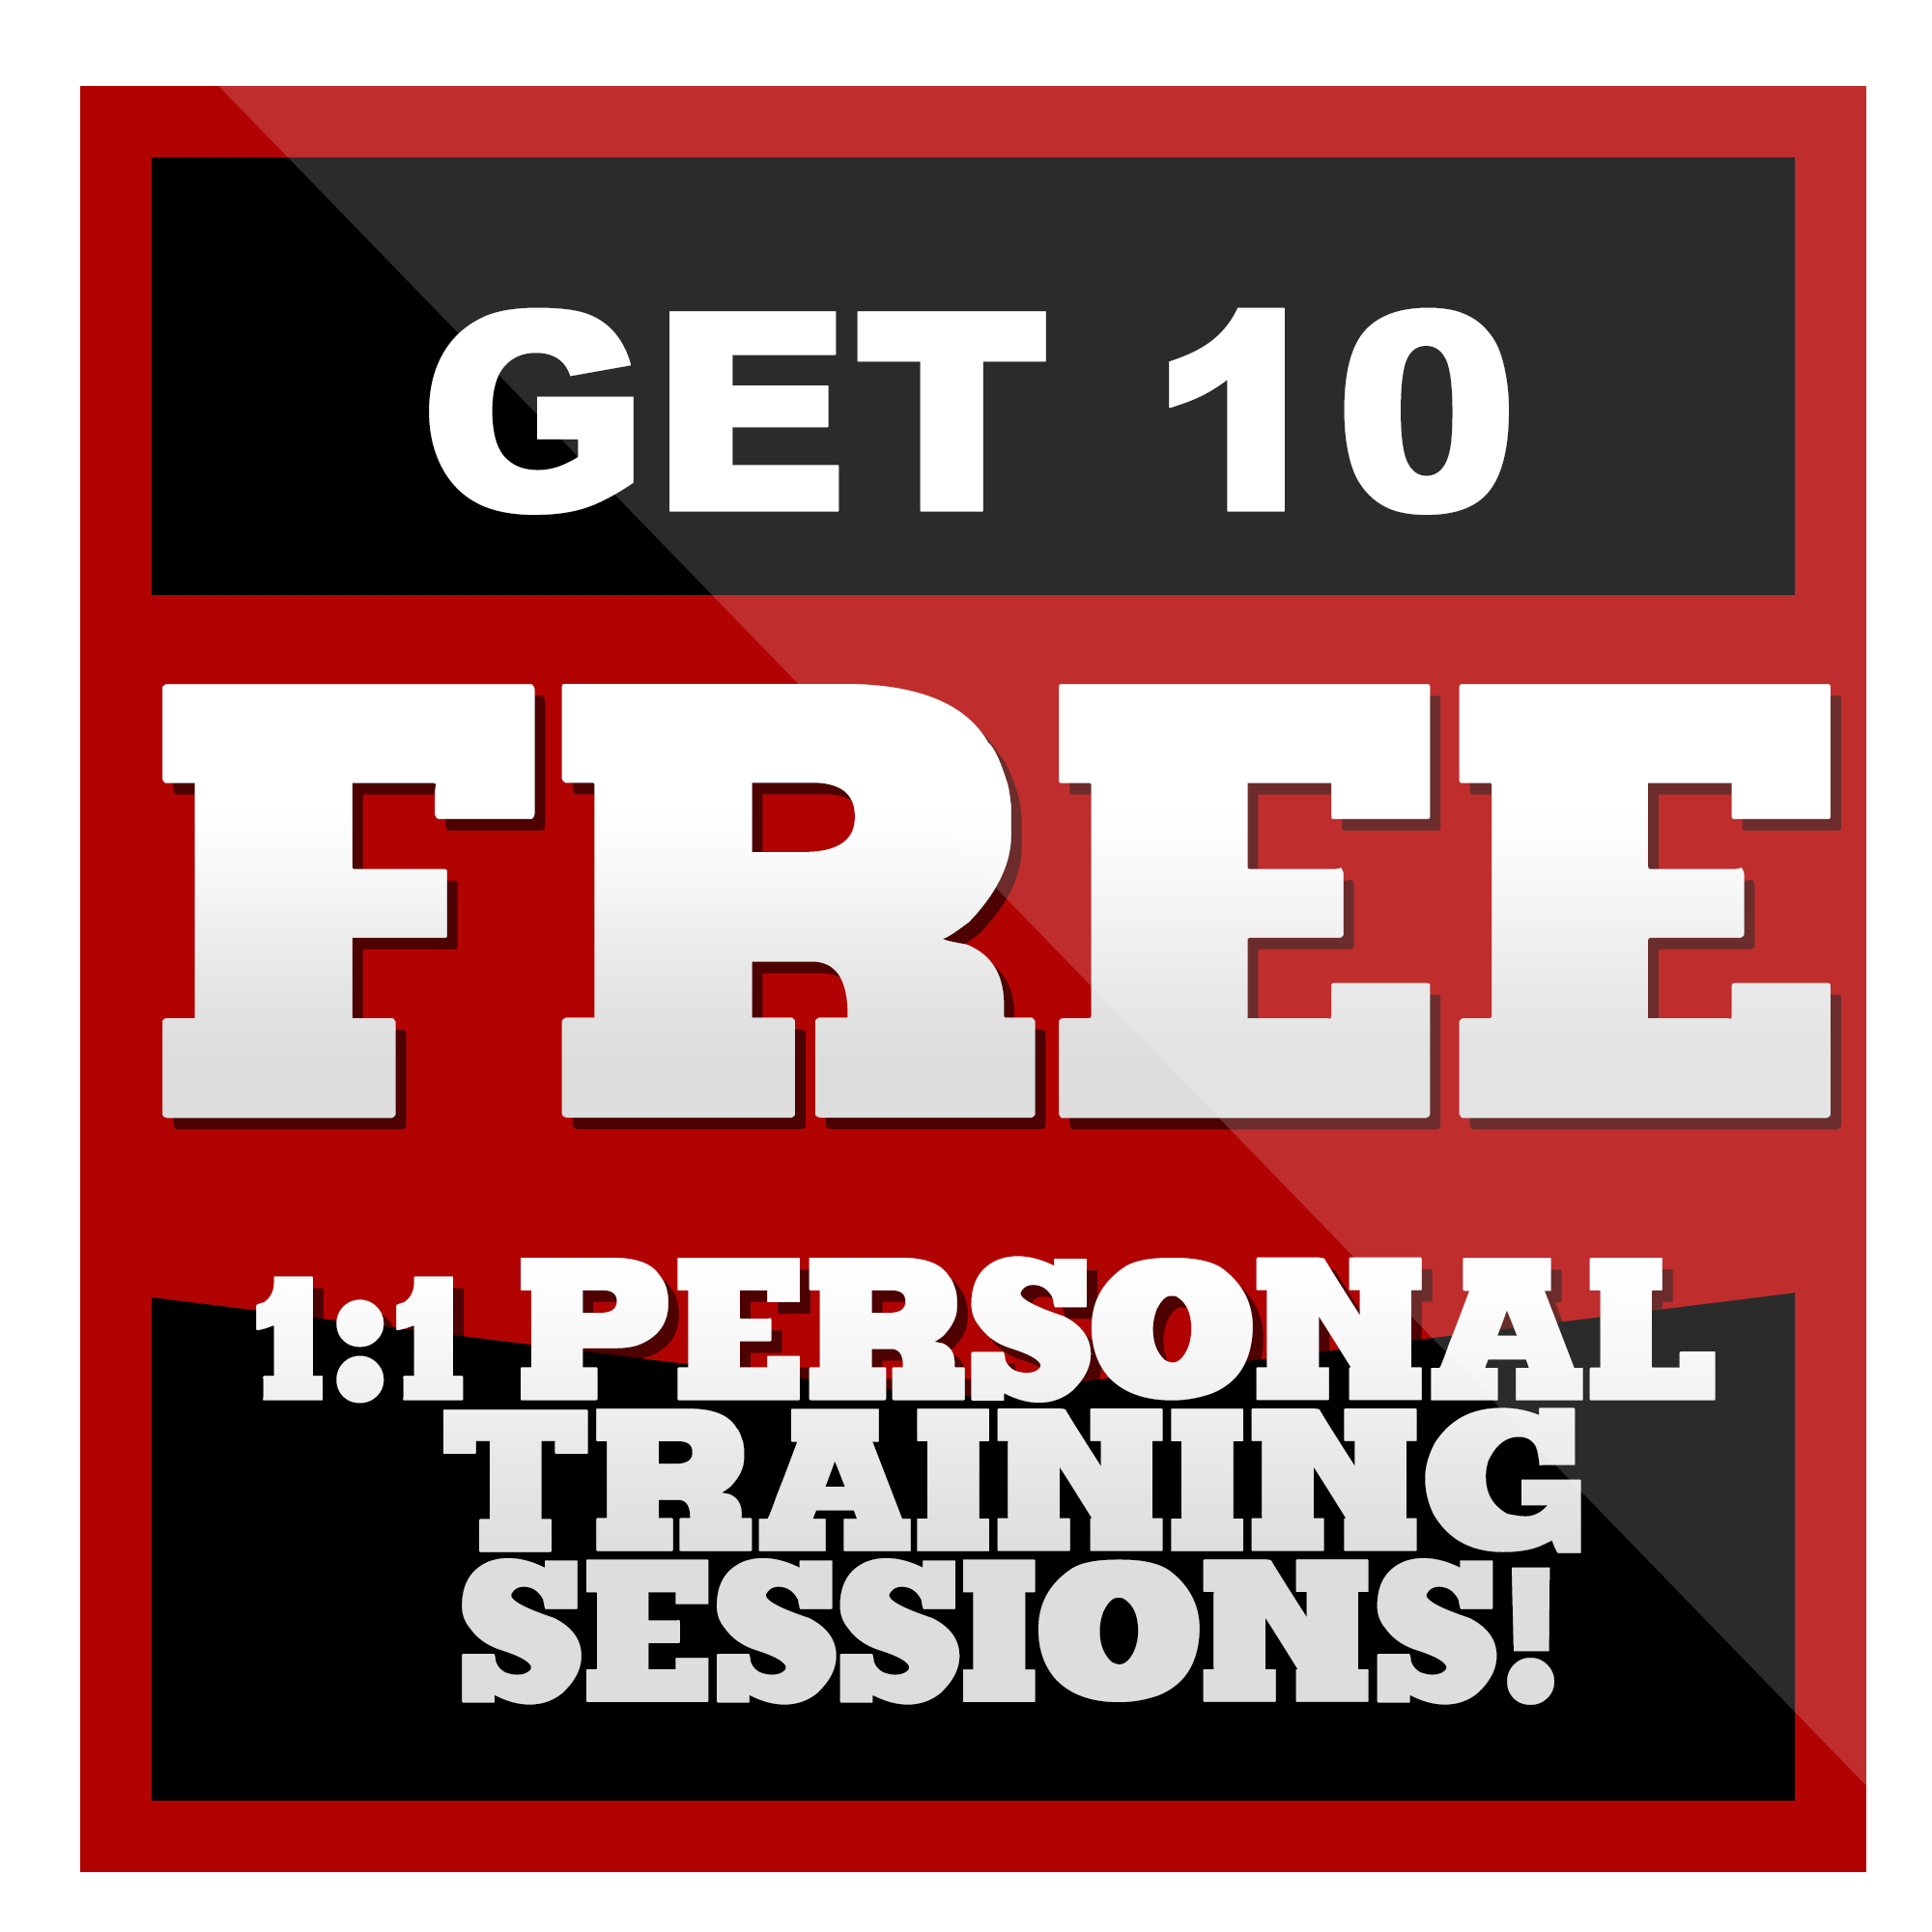 And get 10 FREE 1:1 Personal Training Sessions